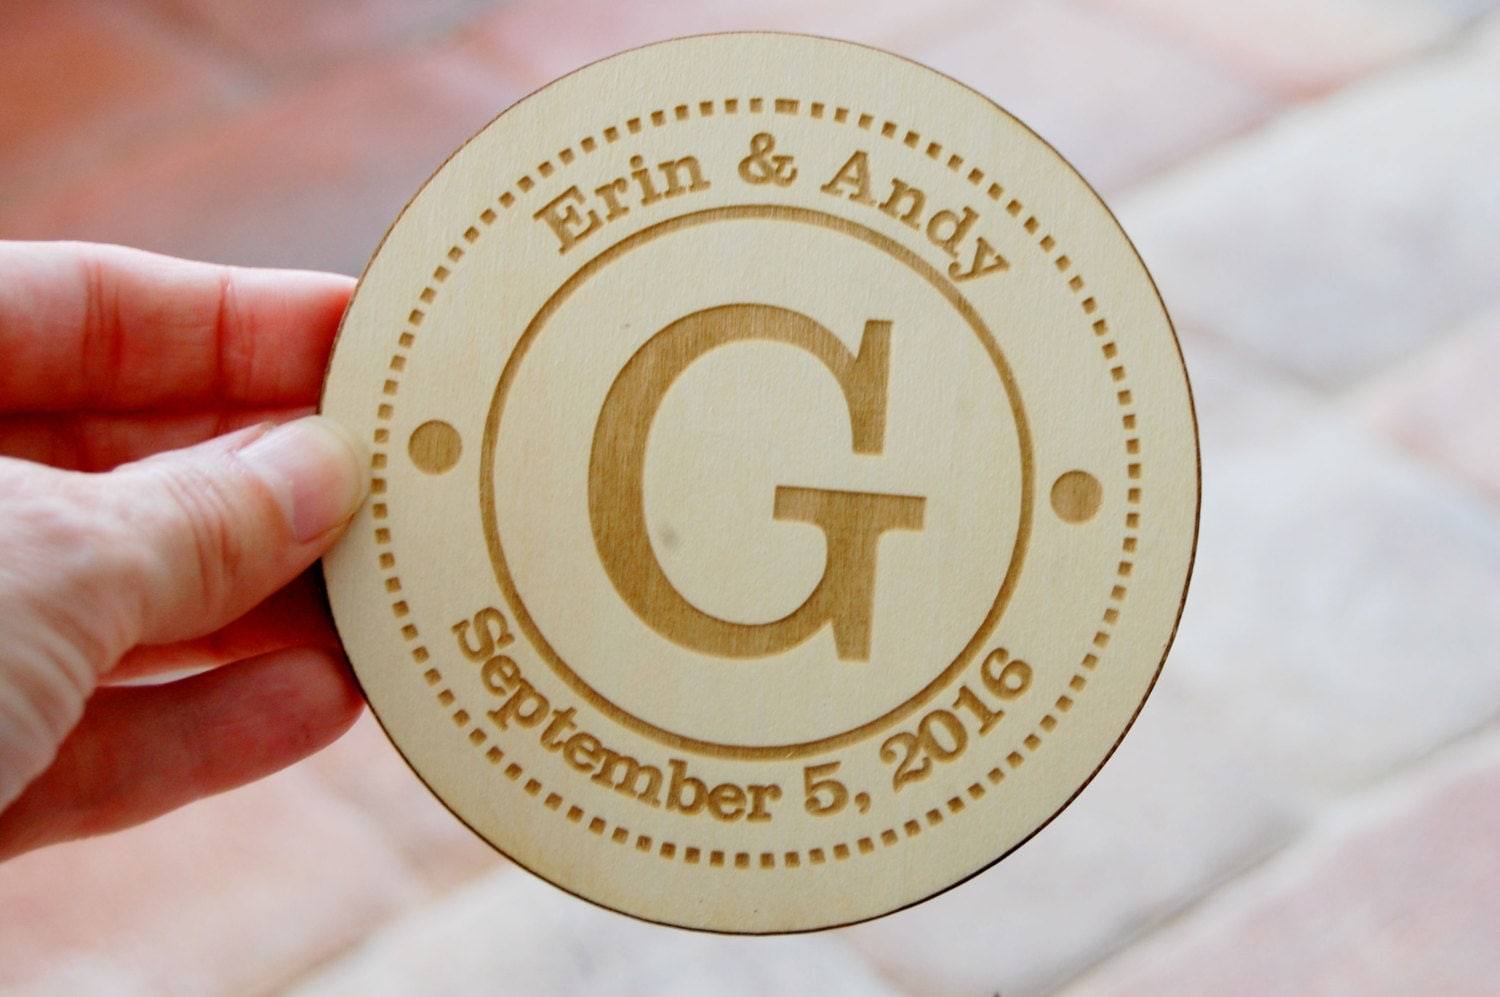 Personalized Coasters Wedding Gift: Engraved Wood Coasters Personalized Drink Coaster Custom